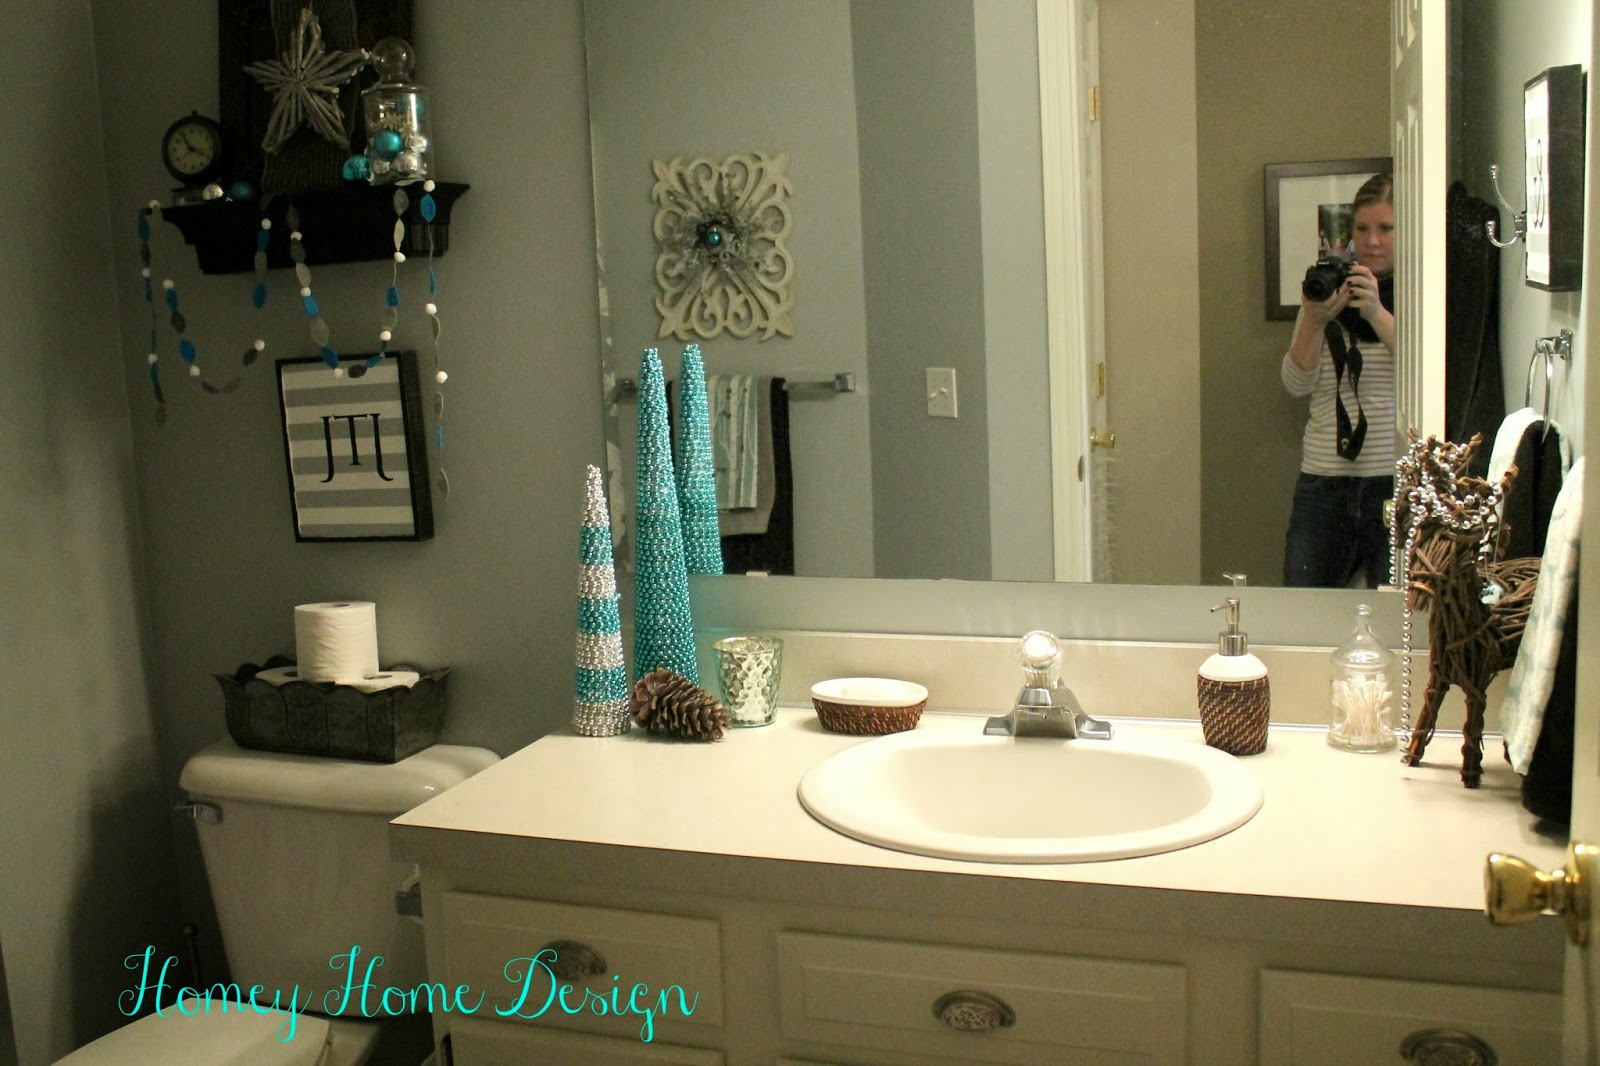 Homey home design bathroom christmas ideas for Restroom design ideas